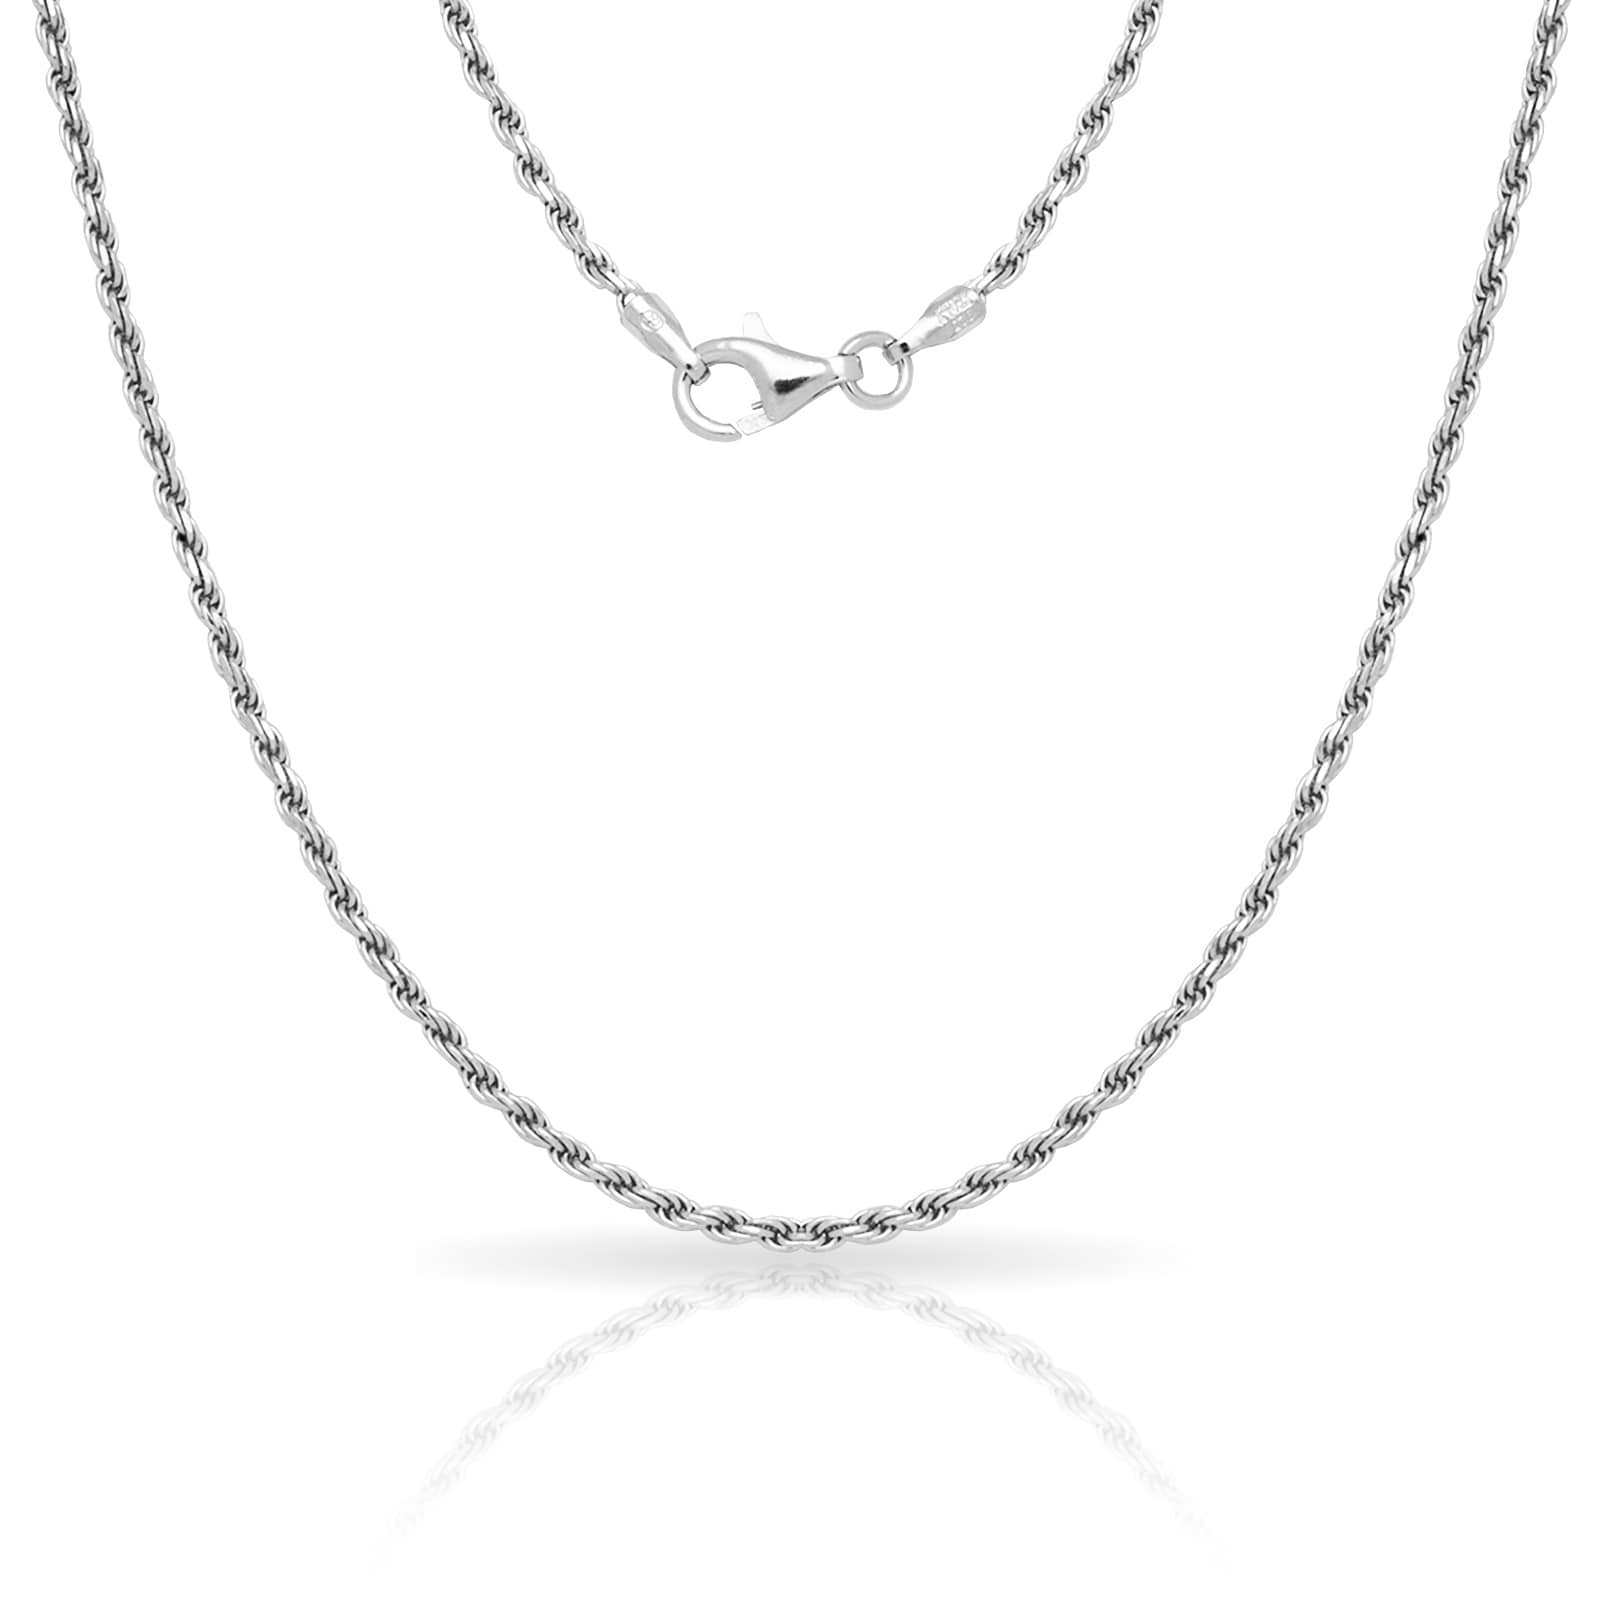 Italian .925 Sterling Silver 1.5mm Rope Chain Necklace available 16-30 inches /…